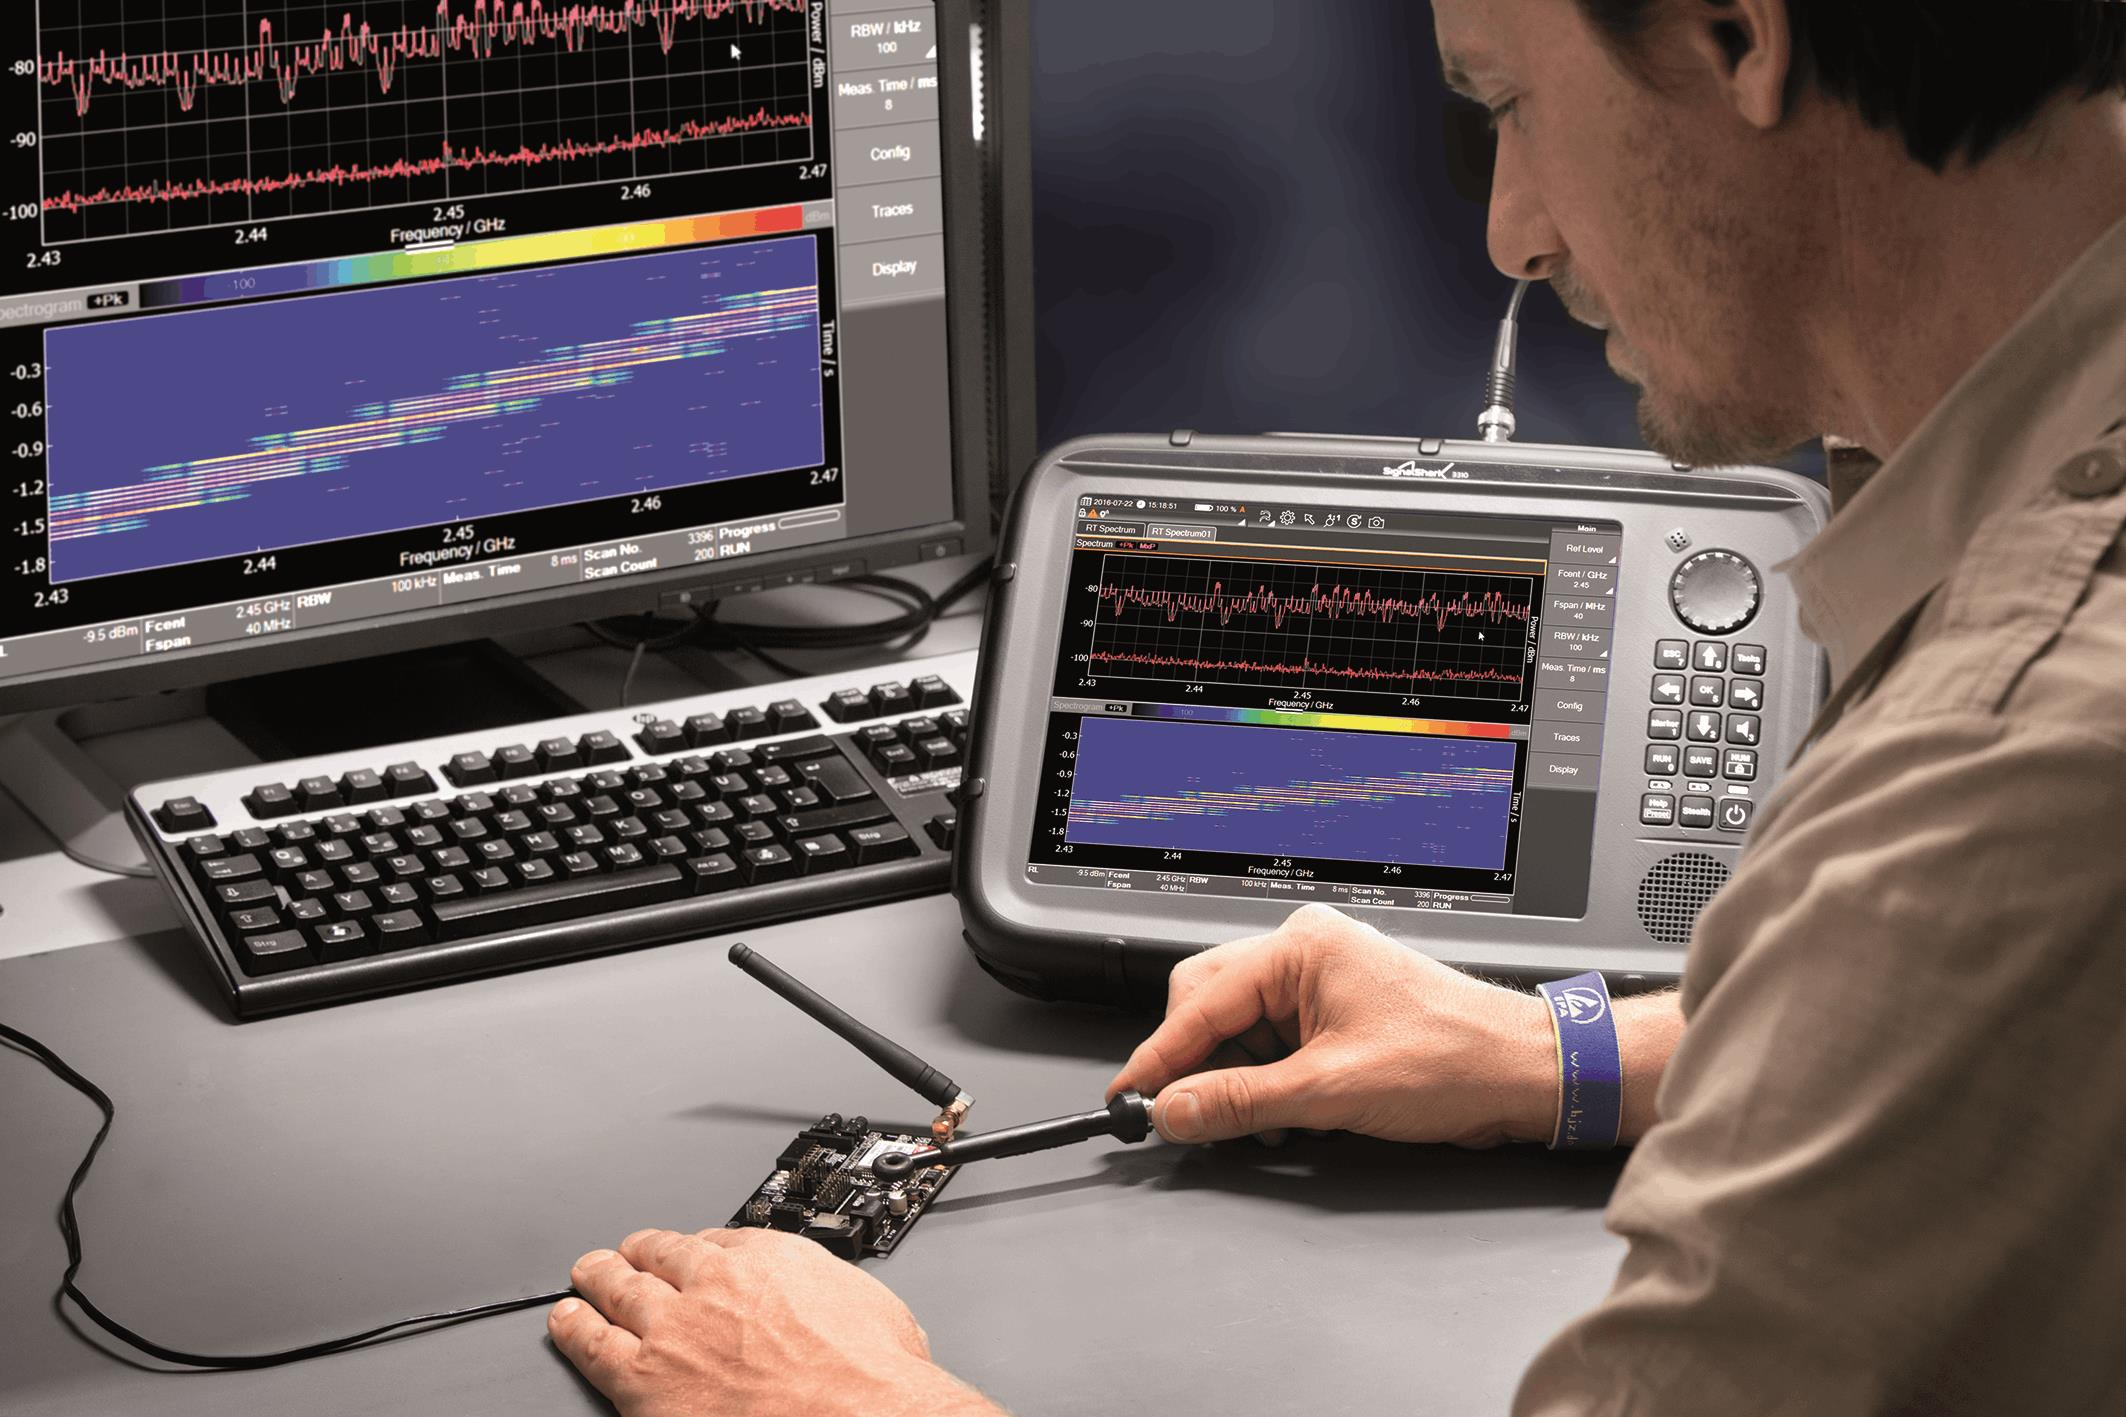 40 MHz Real Time Handheld Spectrum Analyzer The Lab In Your Hand